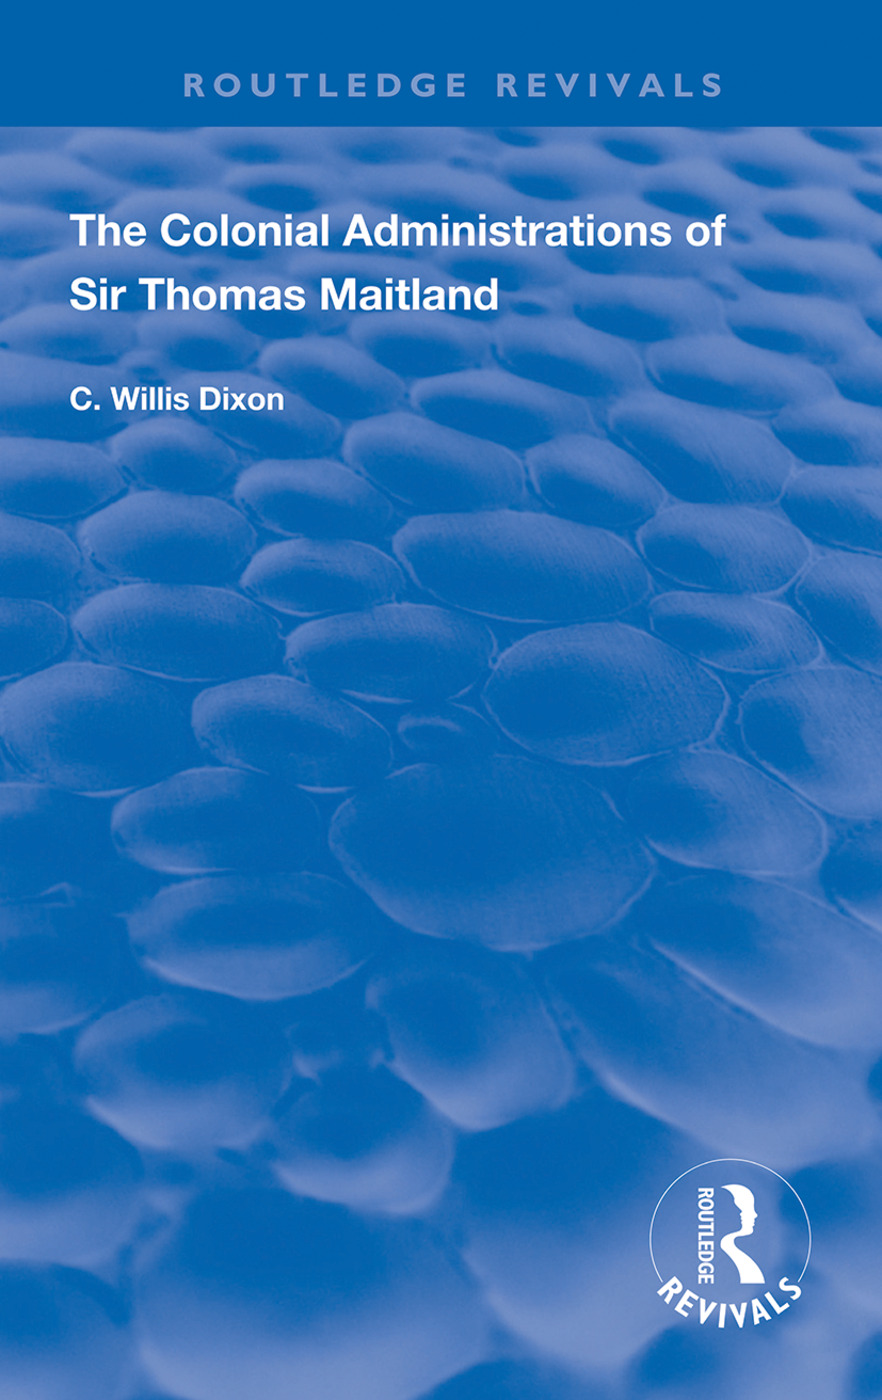 The Colonial Administrations of Sir Thomas Maitland book cover